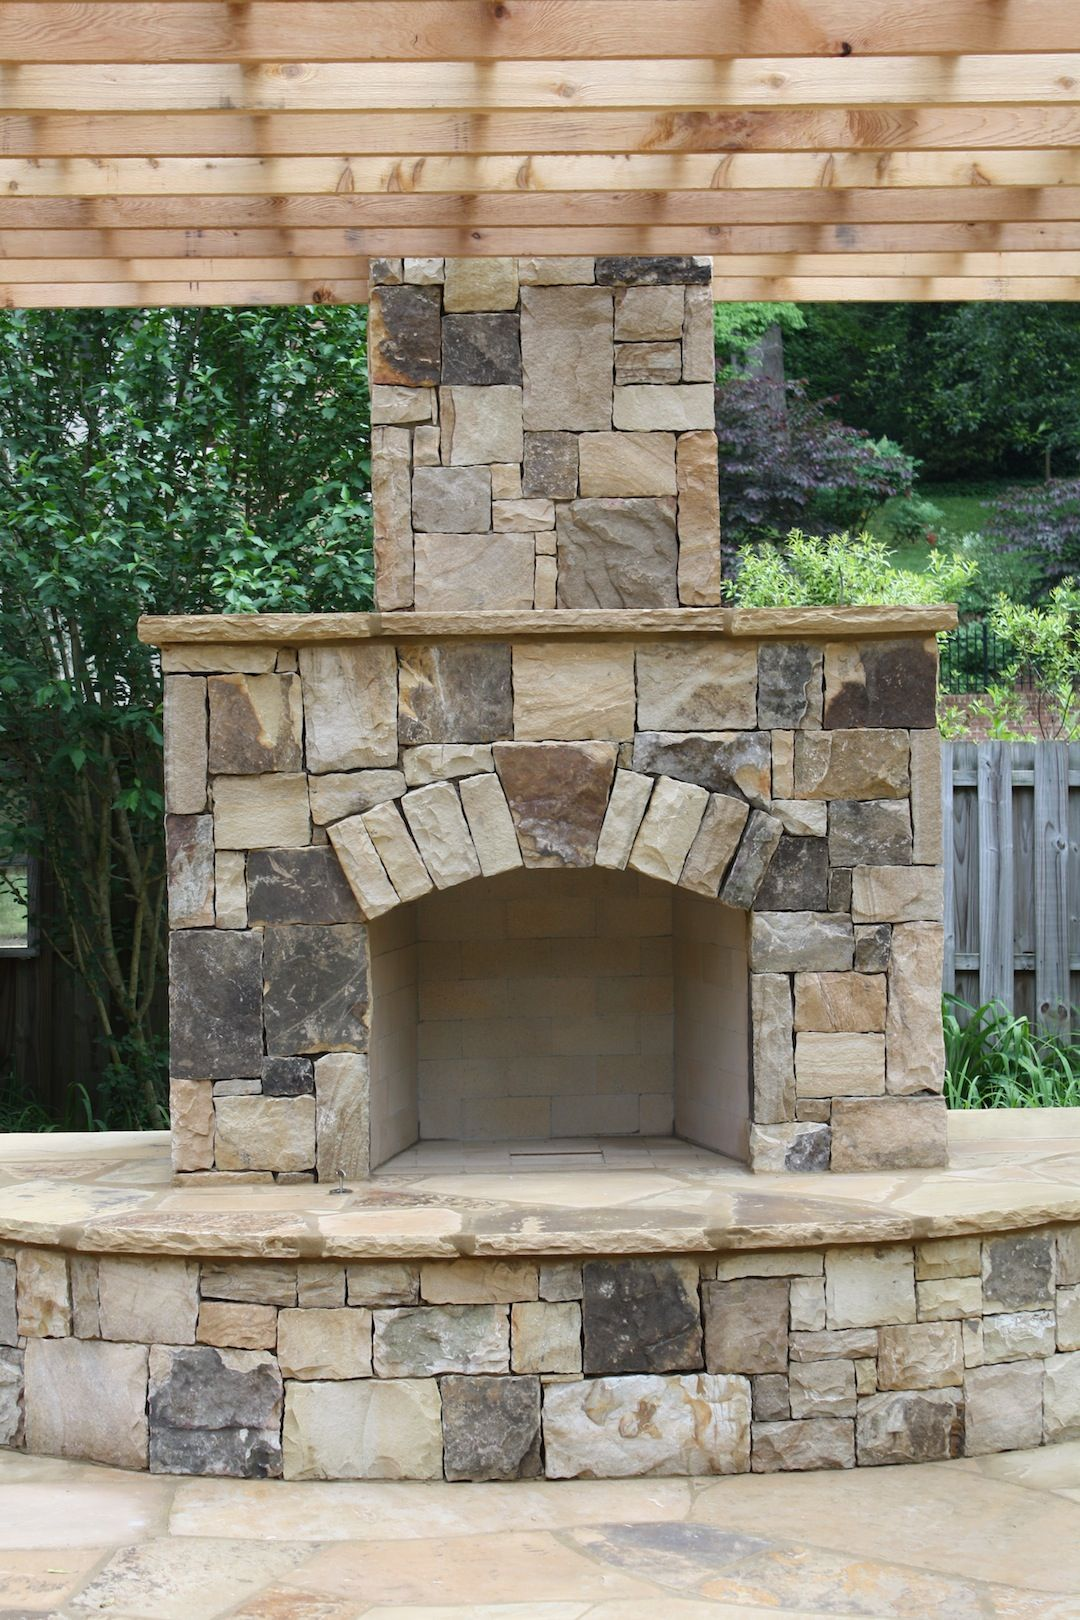 Cheminee Outdoor Outdoor Stone Fireplace With Pergola For The Outdoors